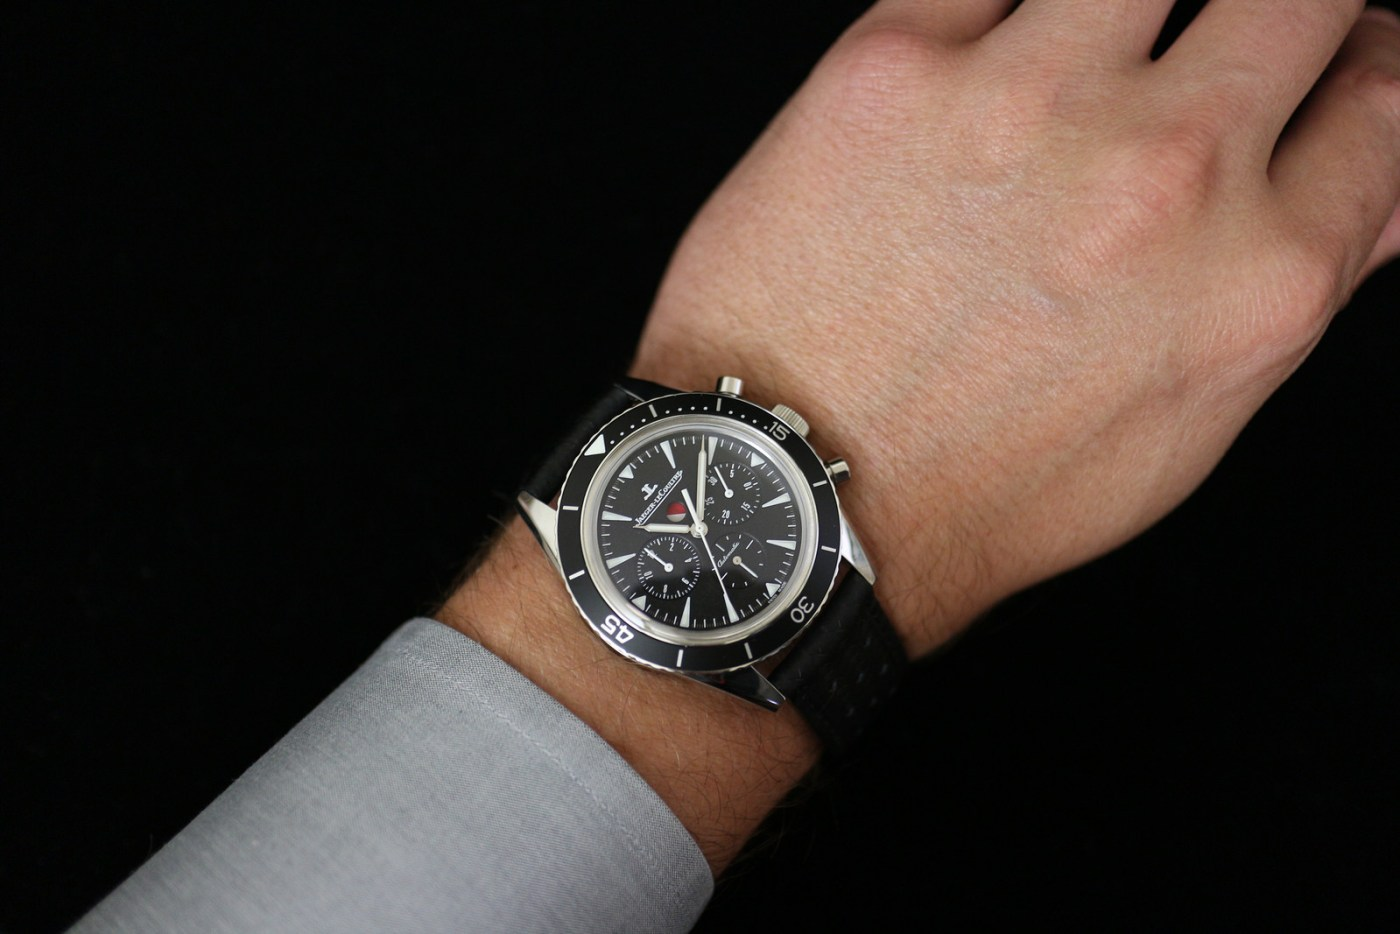 Jaeger-LeCoultre Deep Sea Chronograph with dress shirt